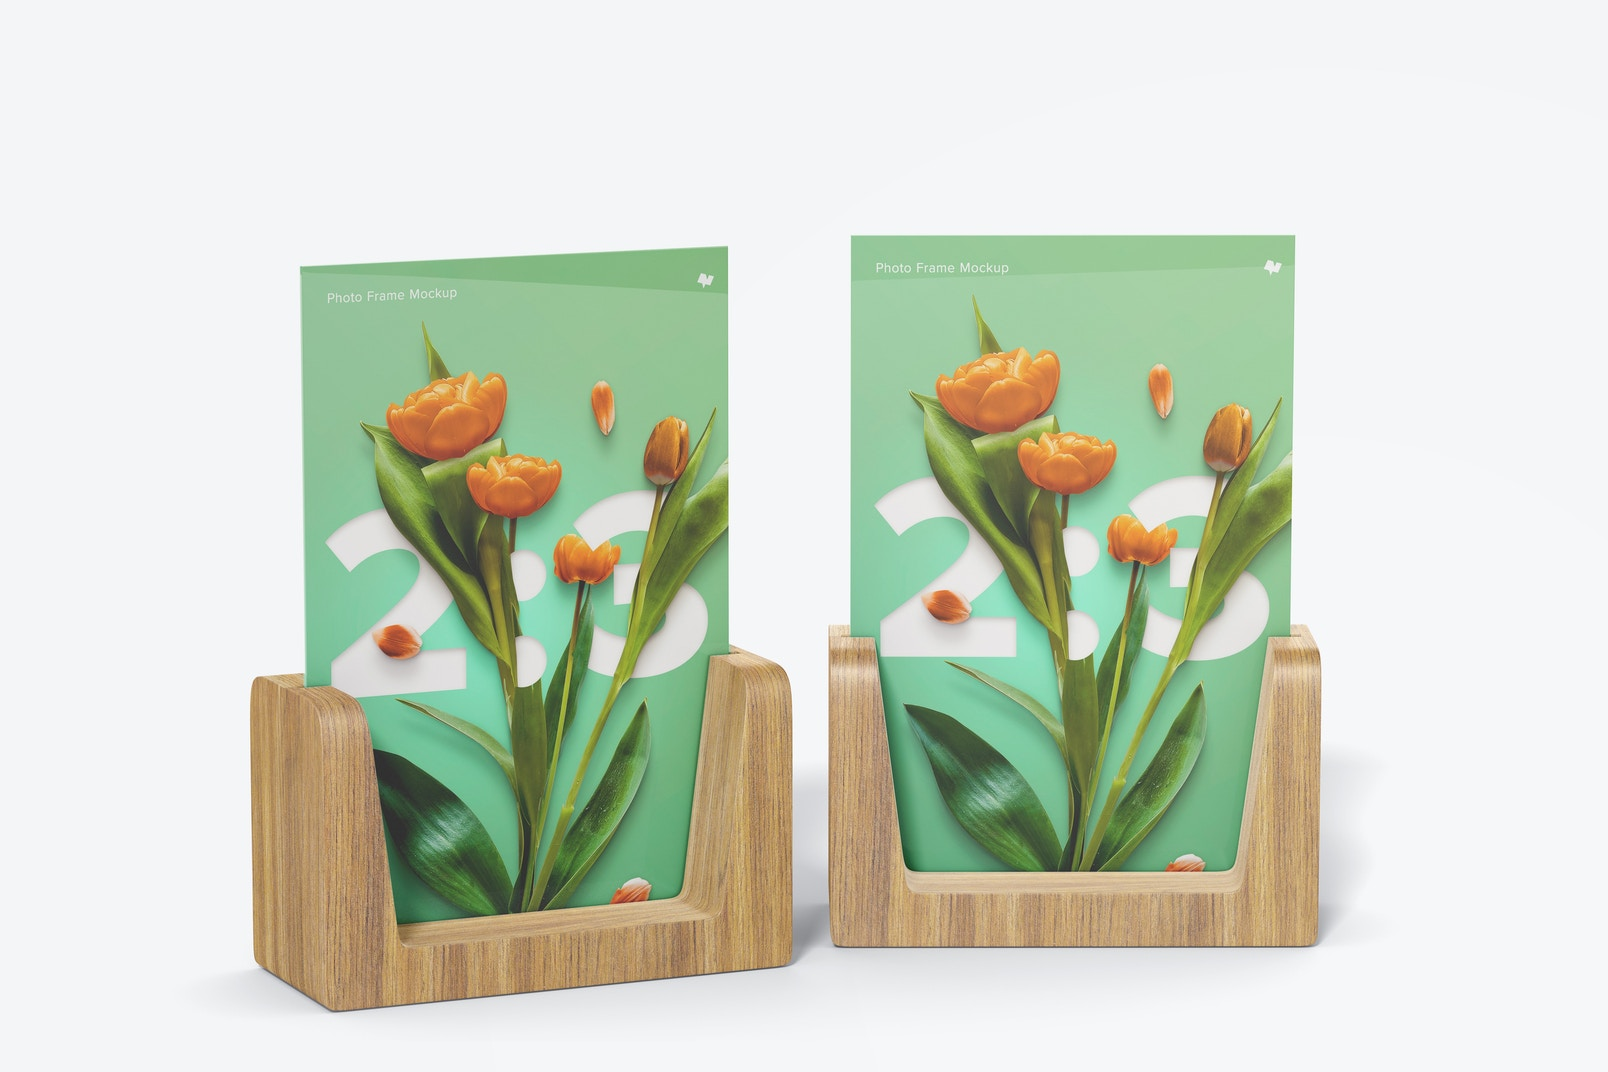 2:3 Photo Frames Mockup, Front View